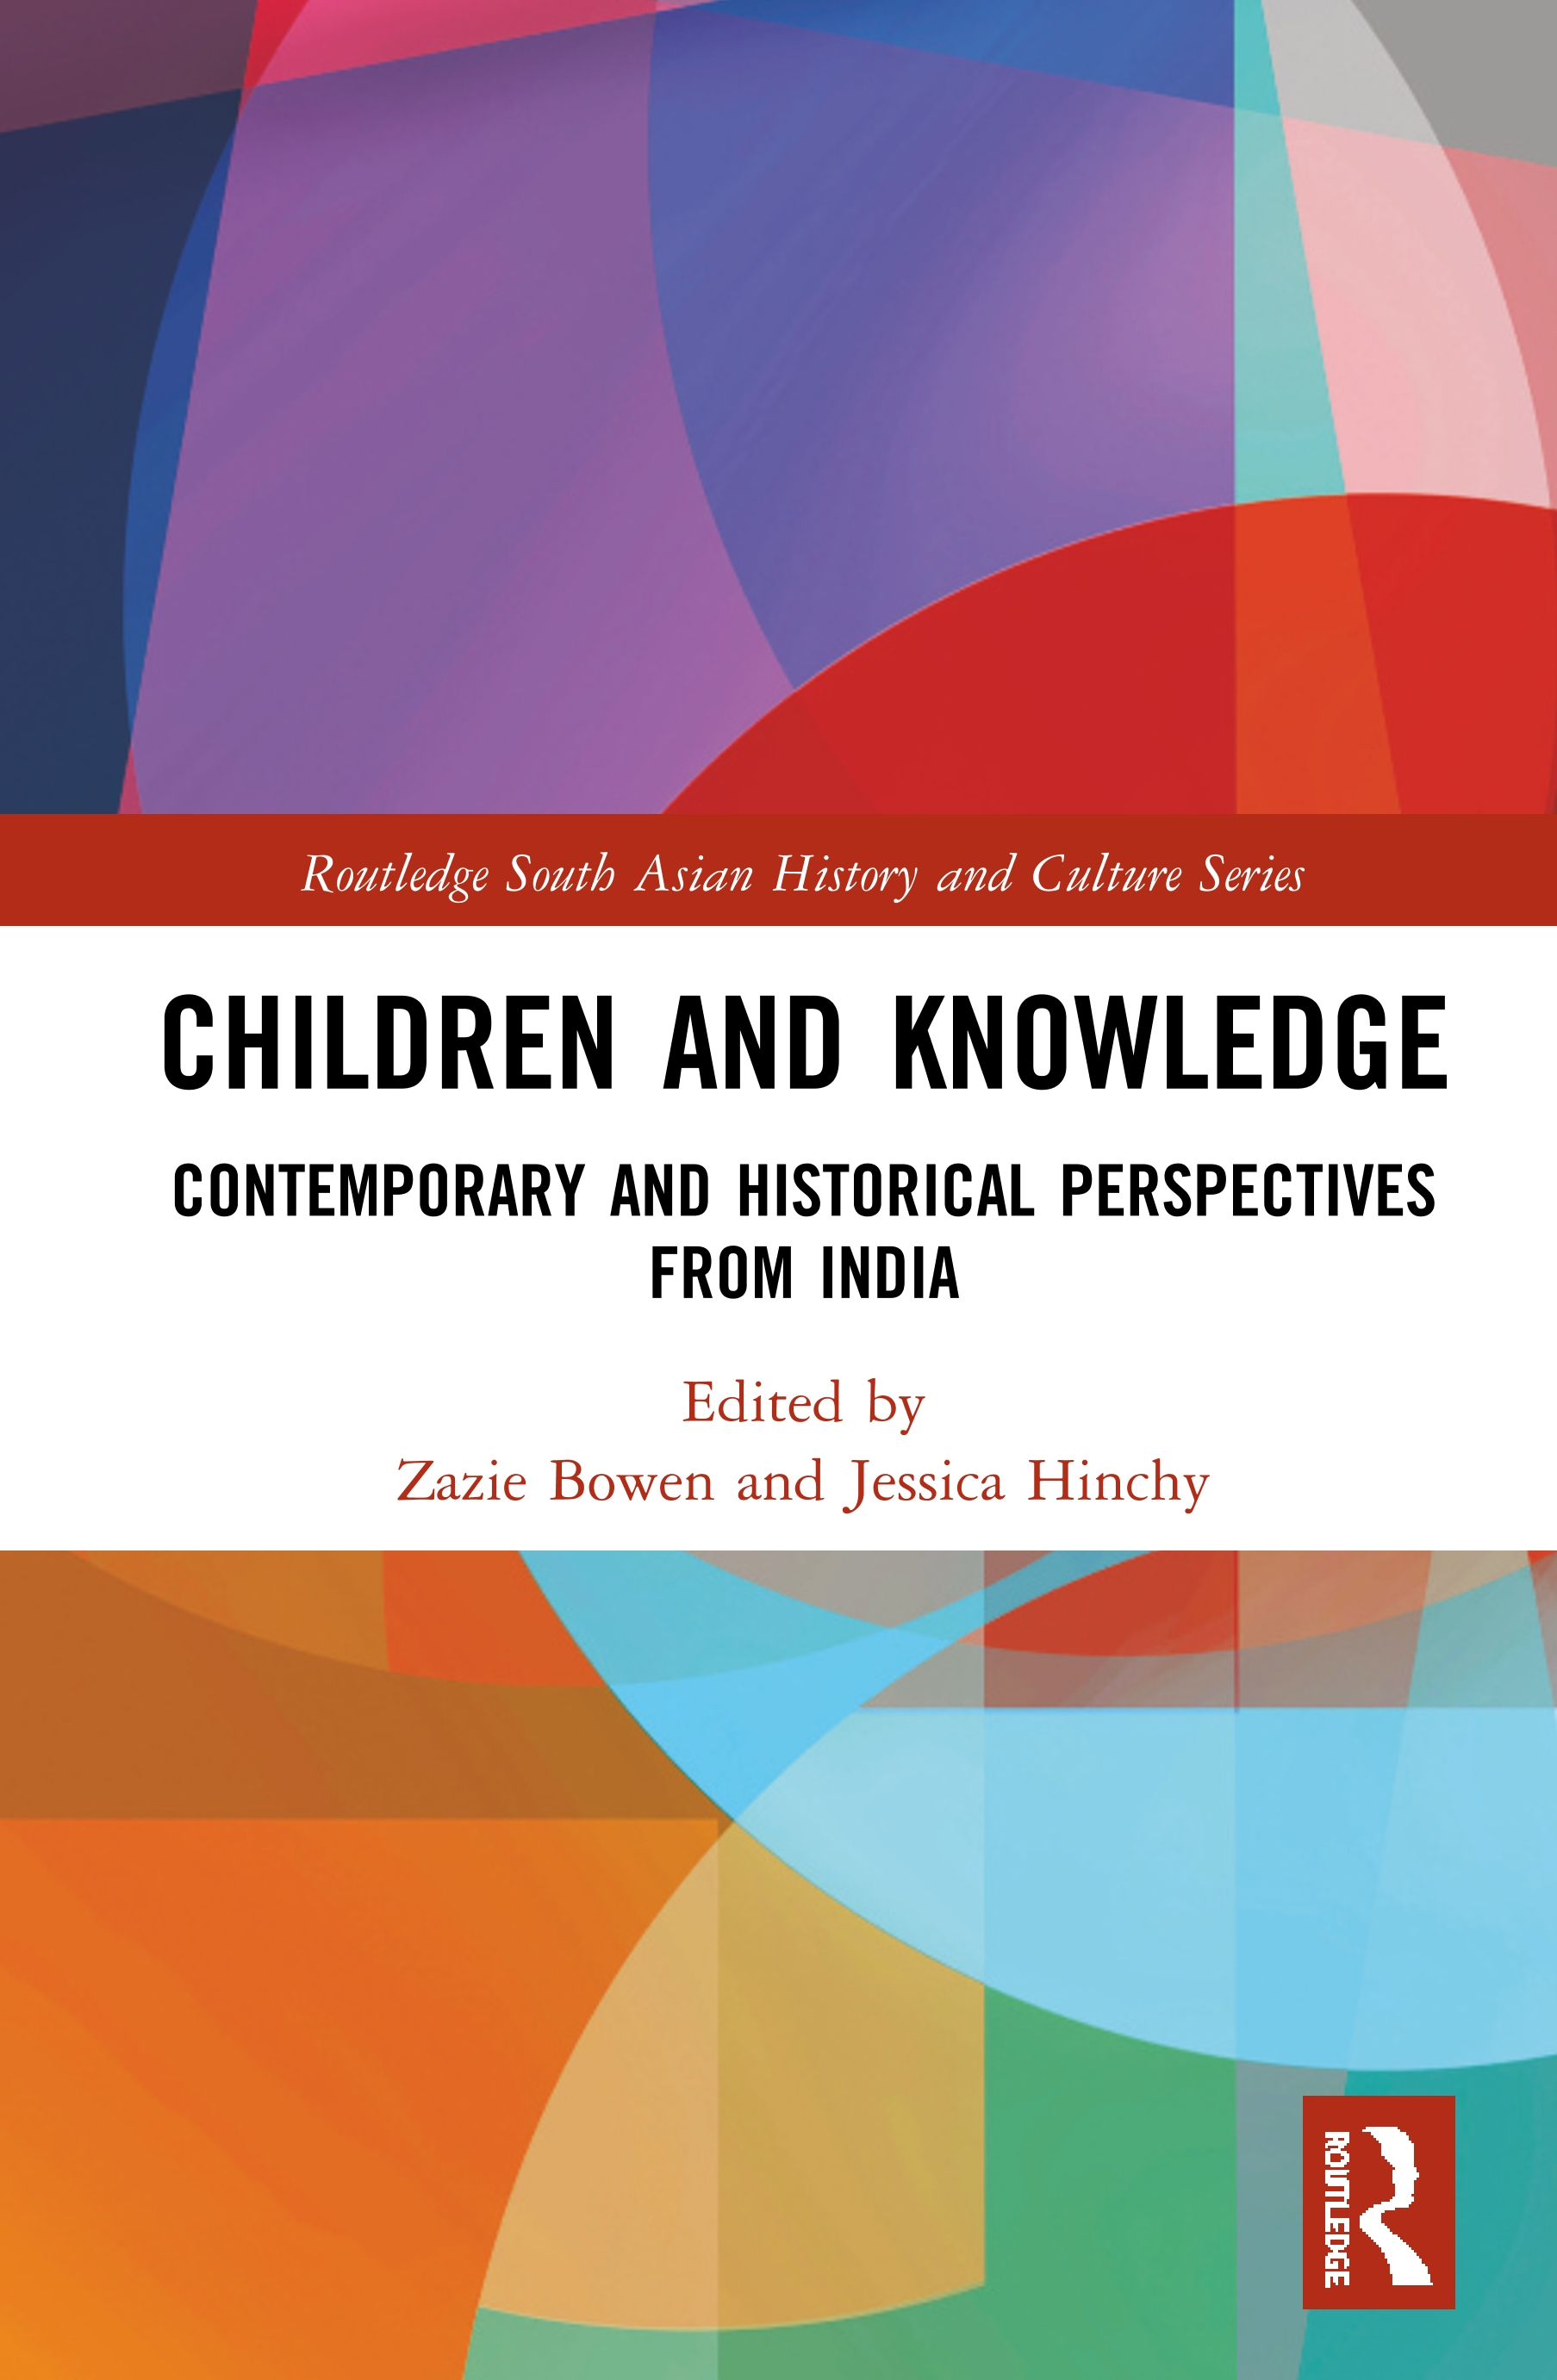 Children and Knowledge: Contemporary and Historical Perspectives from India book cover